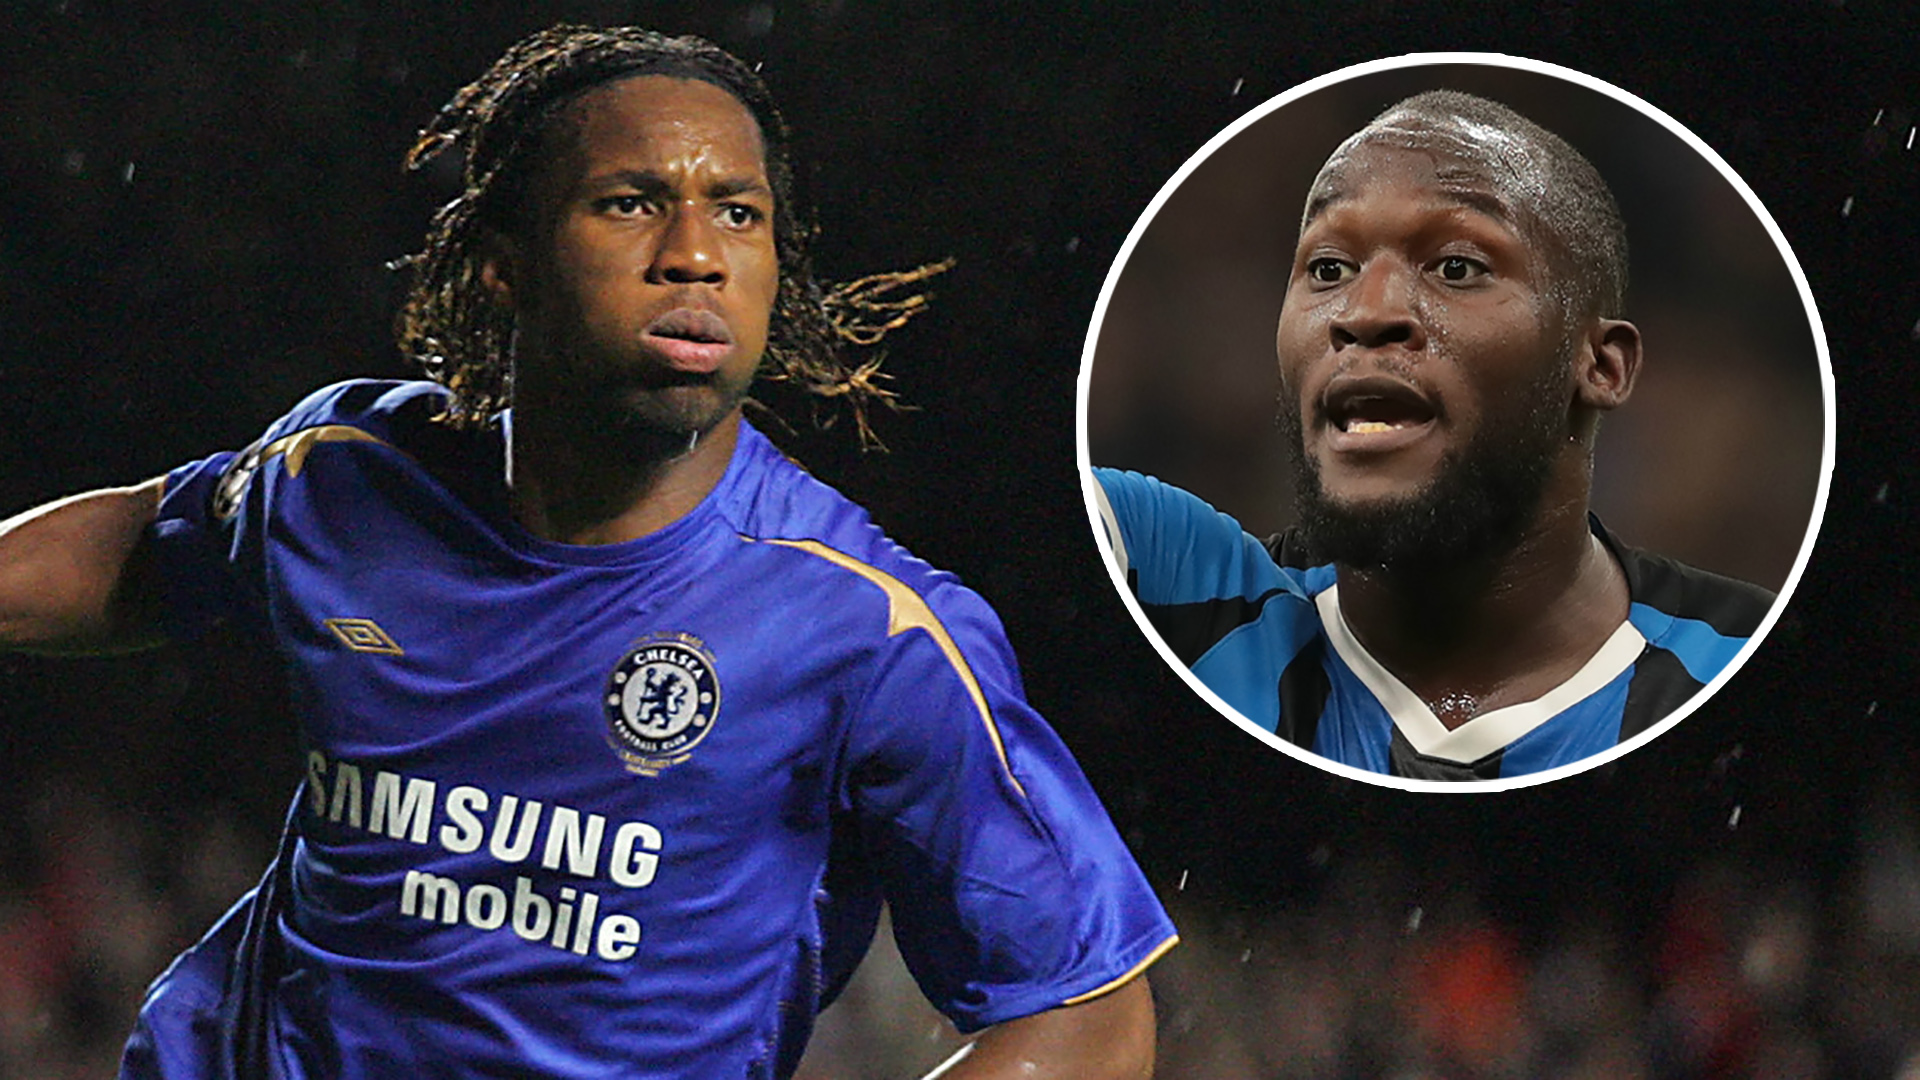 'Lukaku could be Chelsea's modern-day Drogba' – Former Manchester City defender Mills